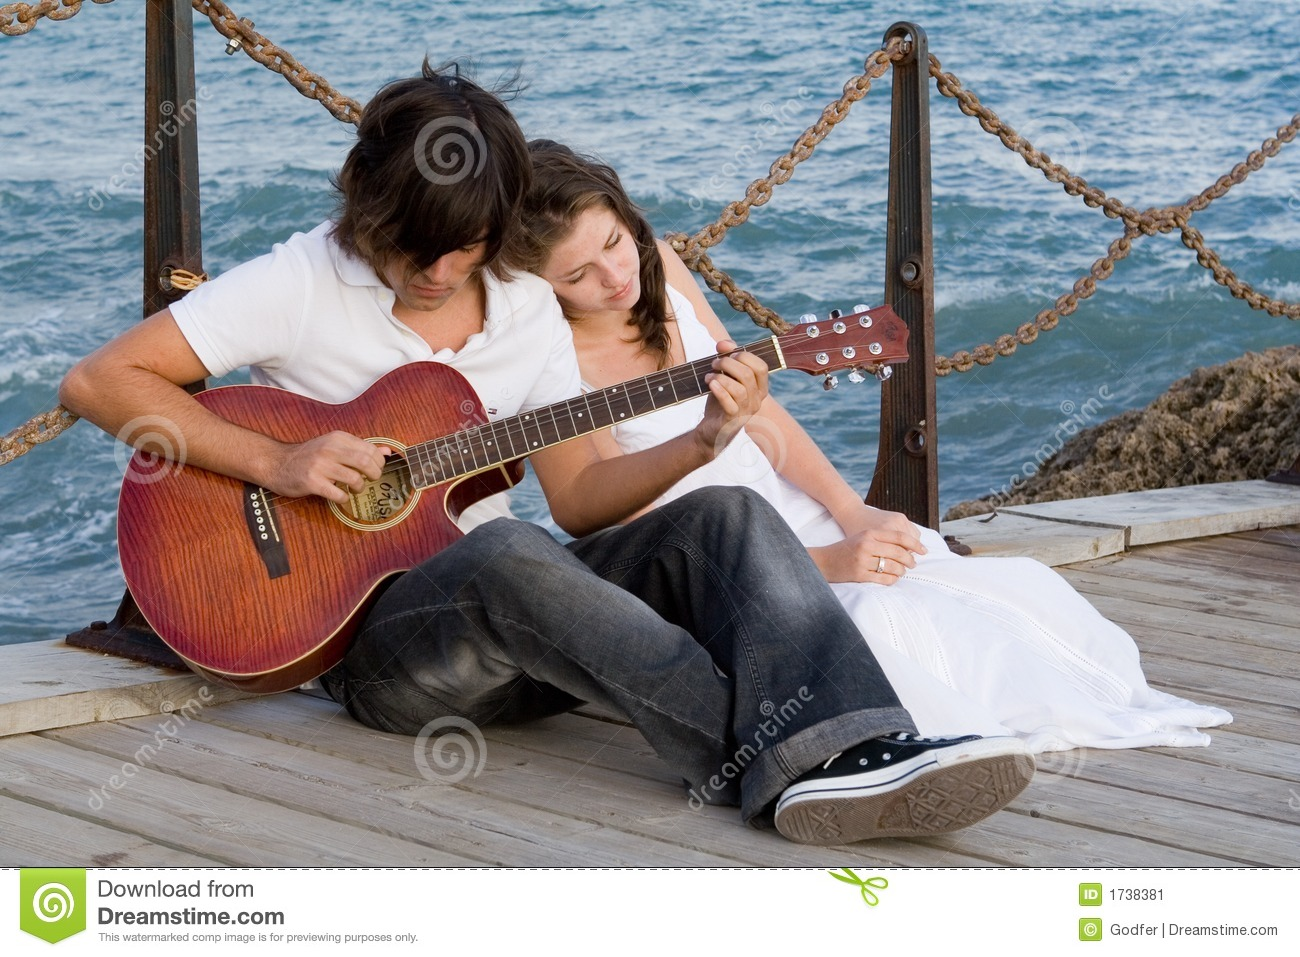 Download Romantic Couple With Guitar Stock Image - Image of love, playing: 1738381